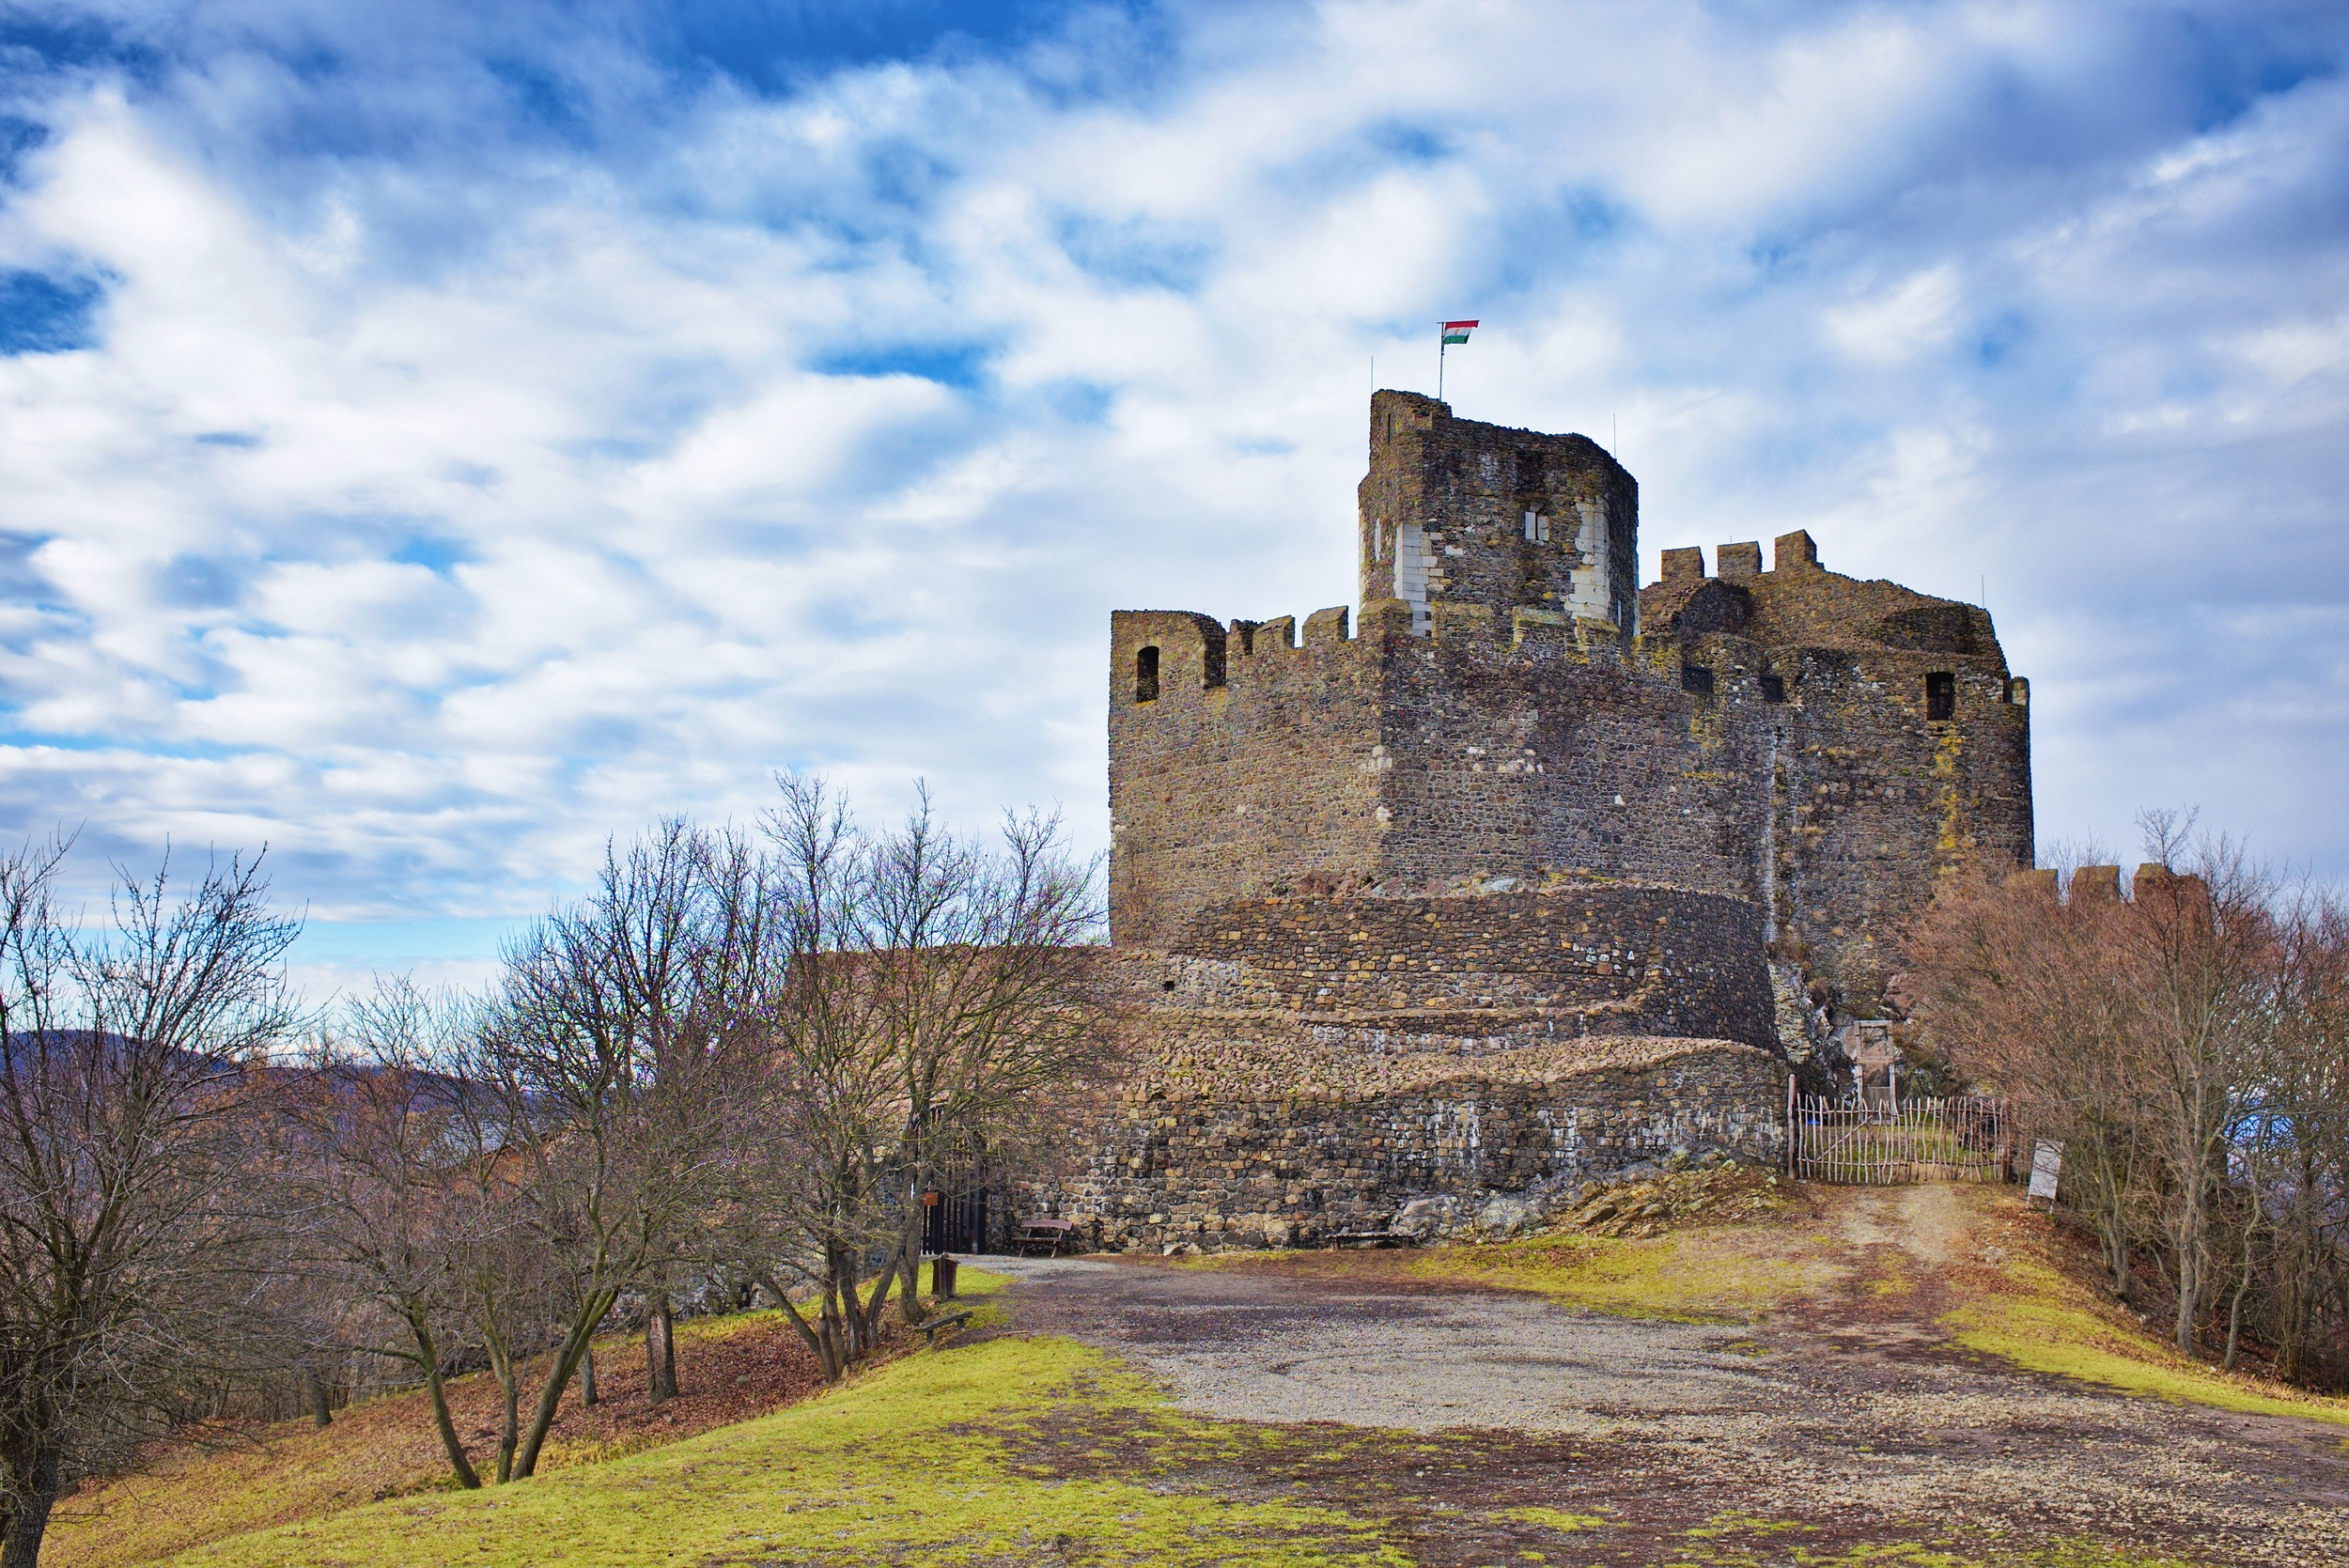 Holloko fortress built in the 13th century in Hungary